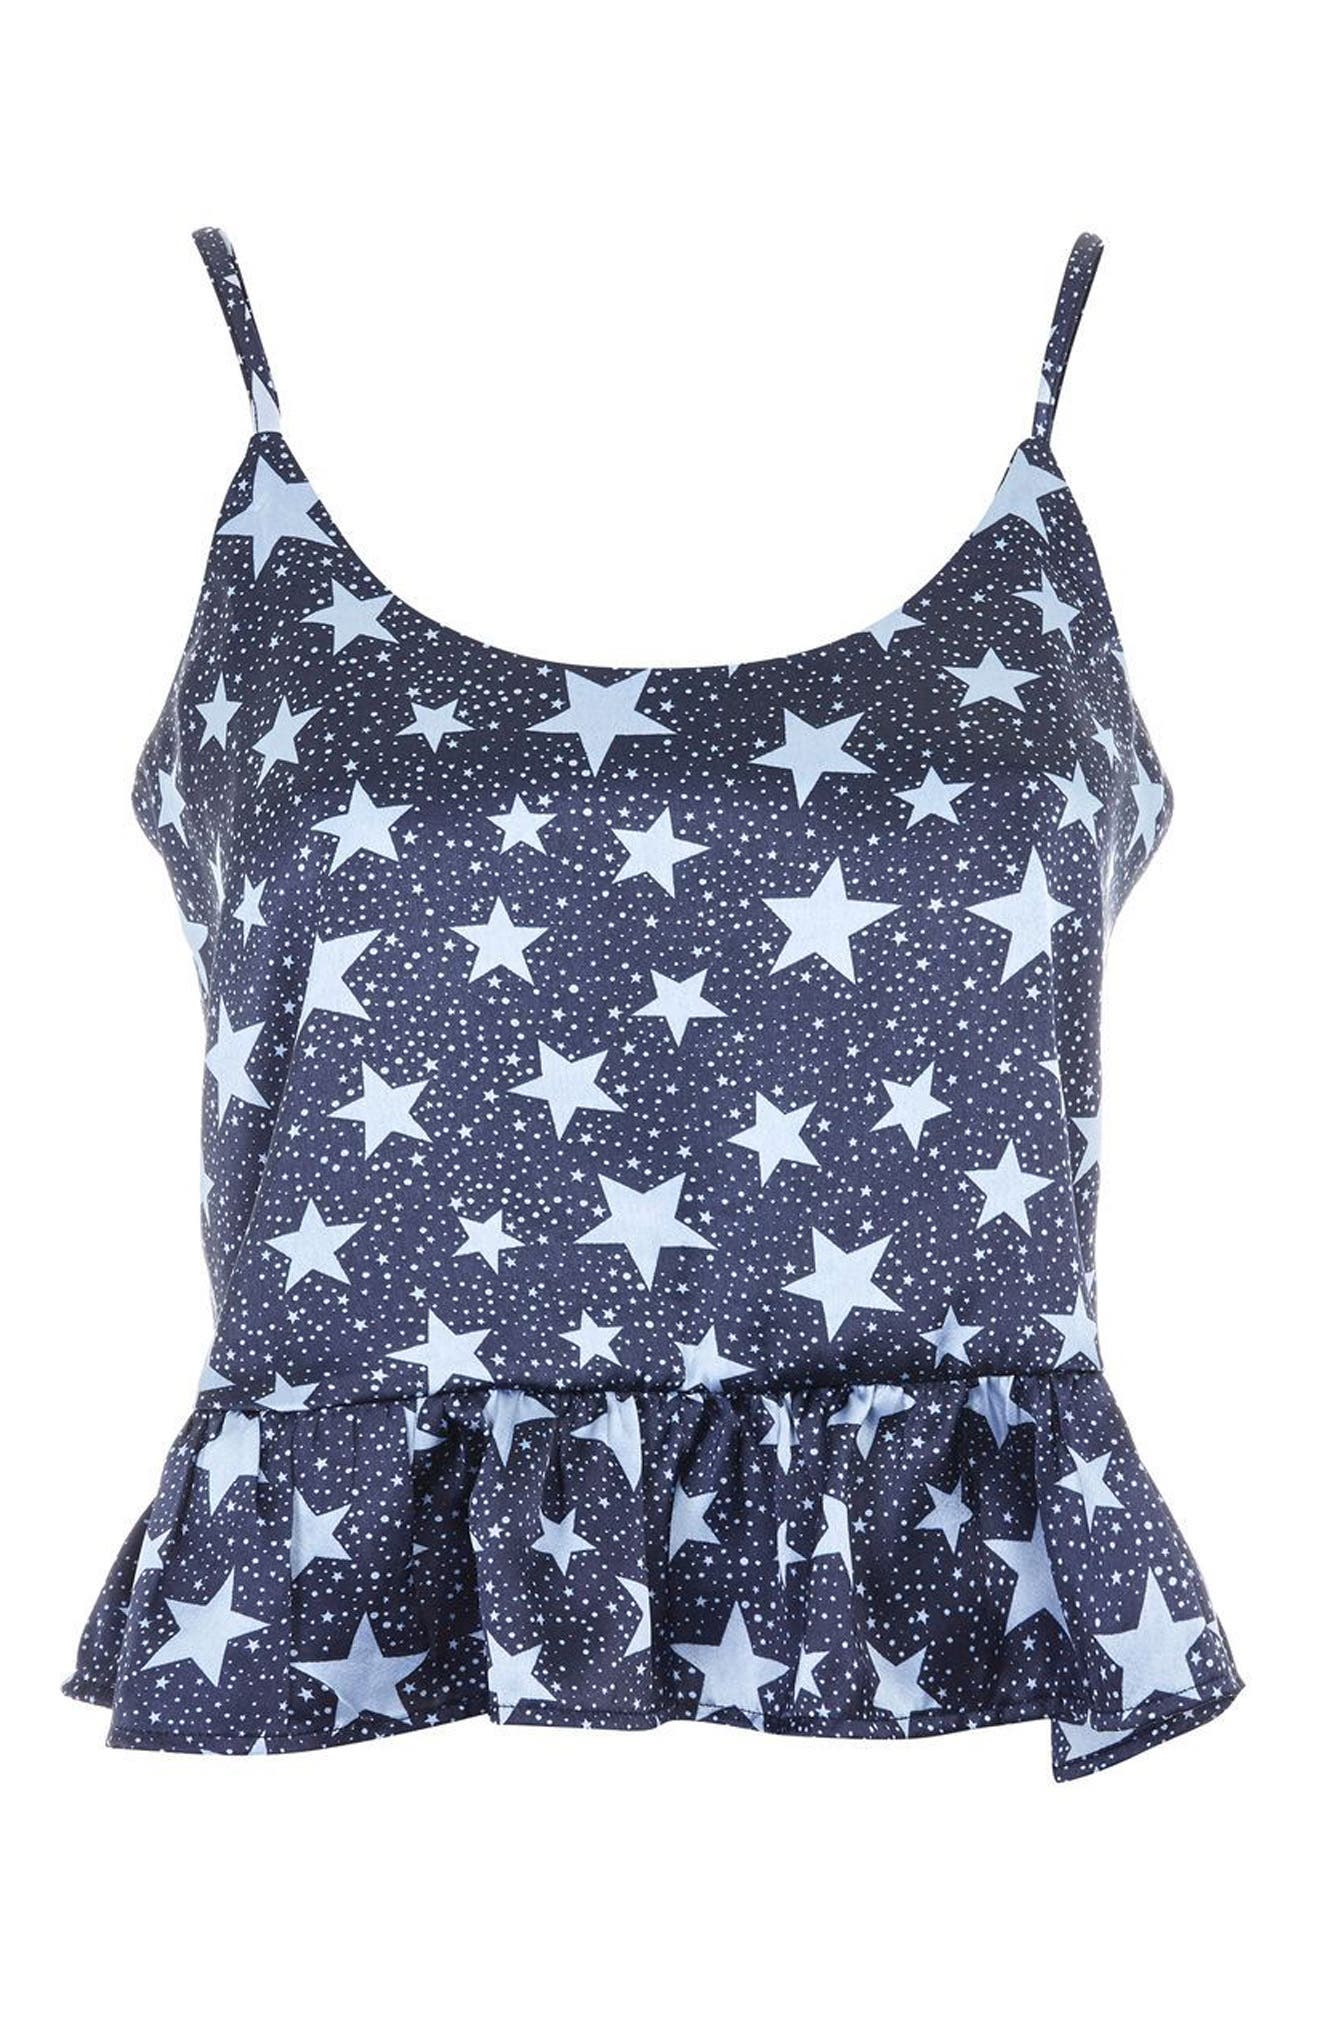 Star Satin Pajamas,                             Alternate thumbnail 2, color,                             Navy Blue Multi